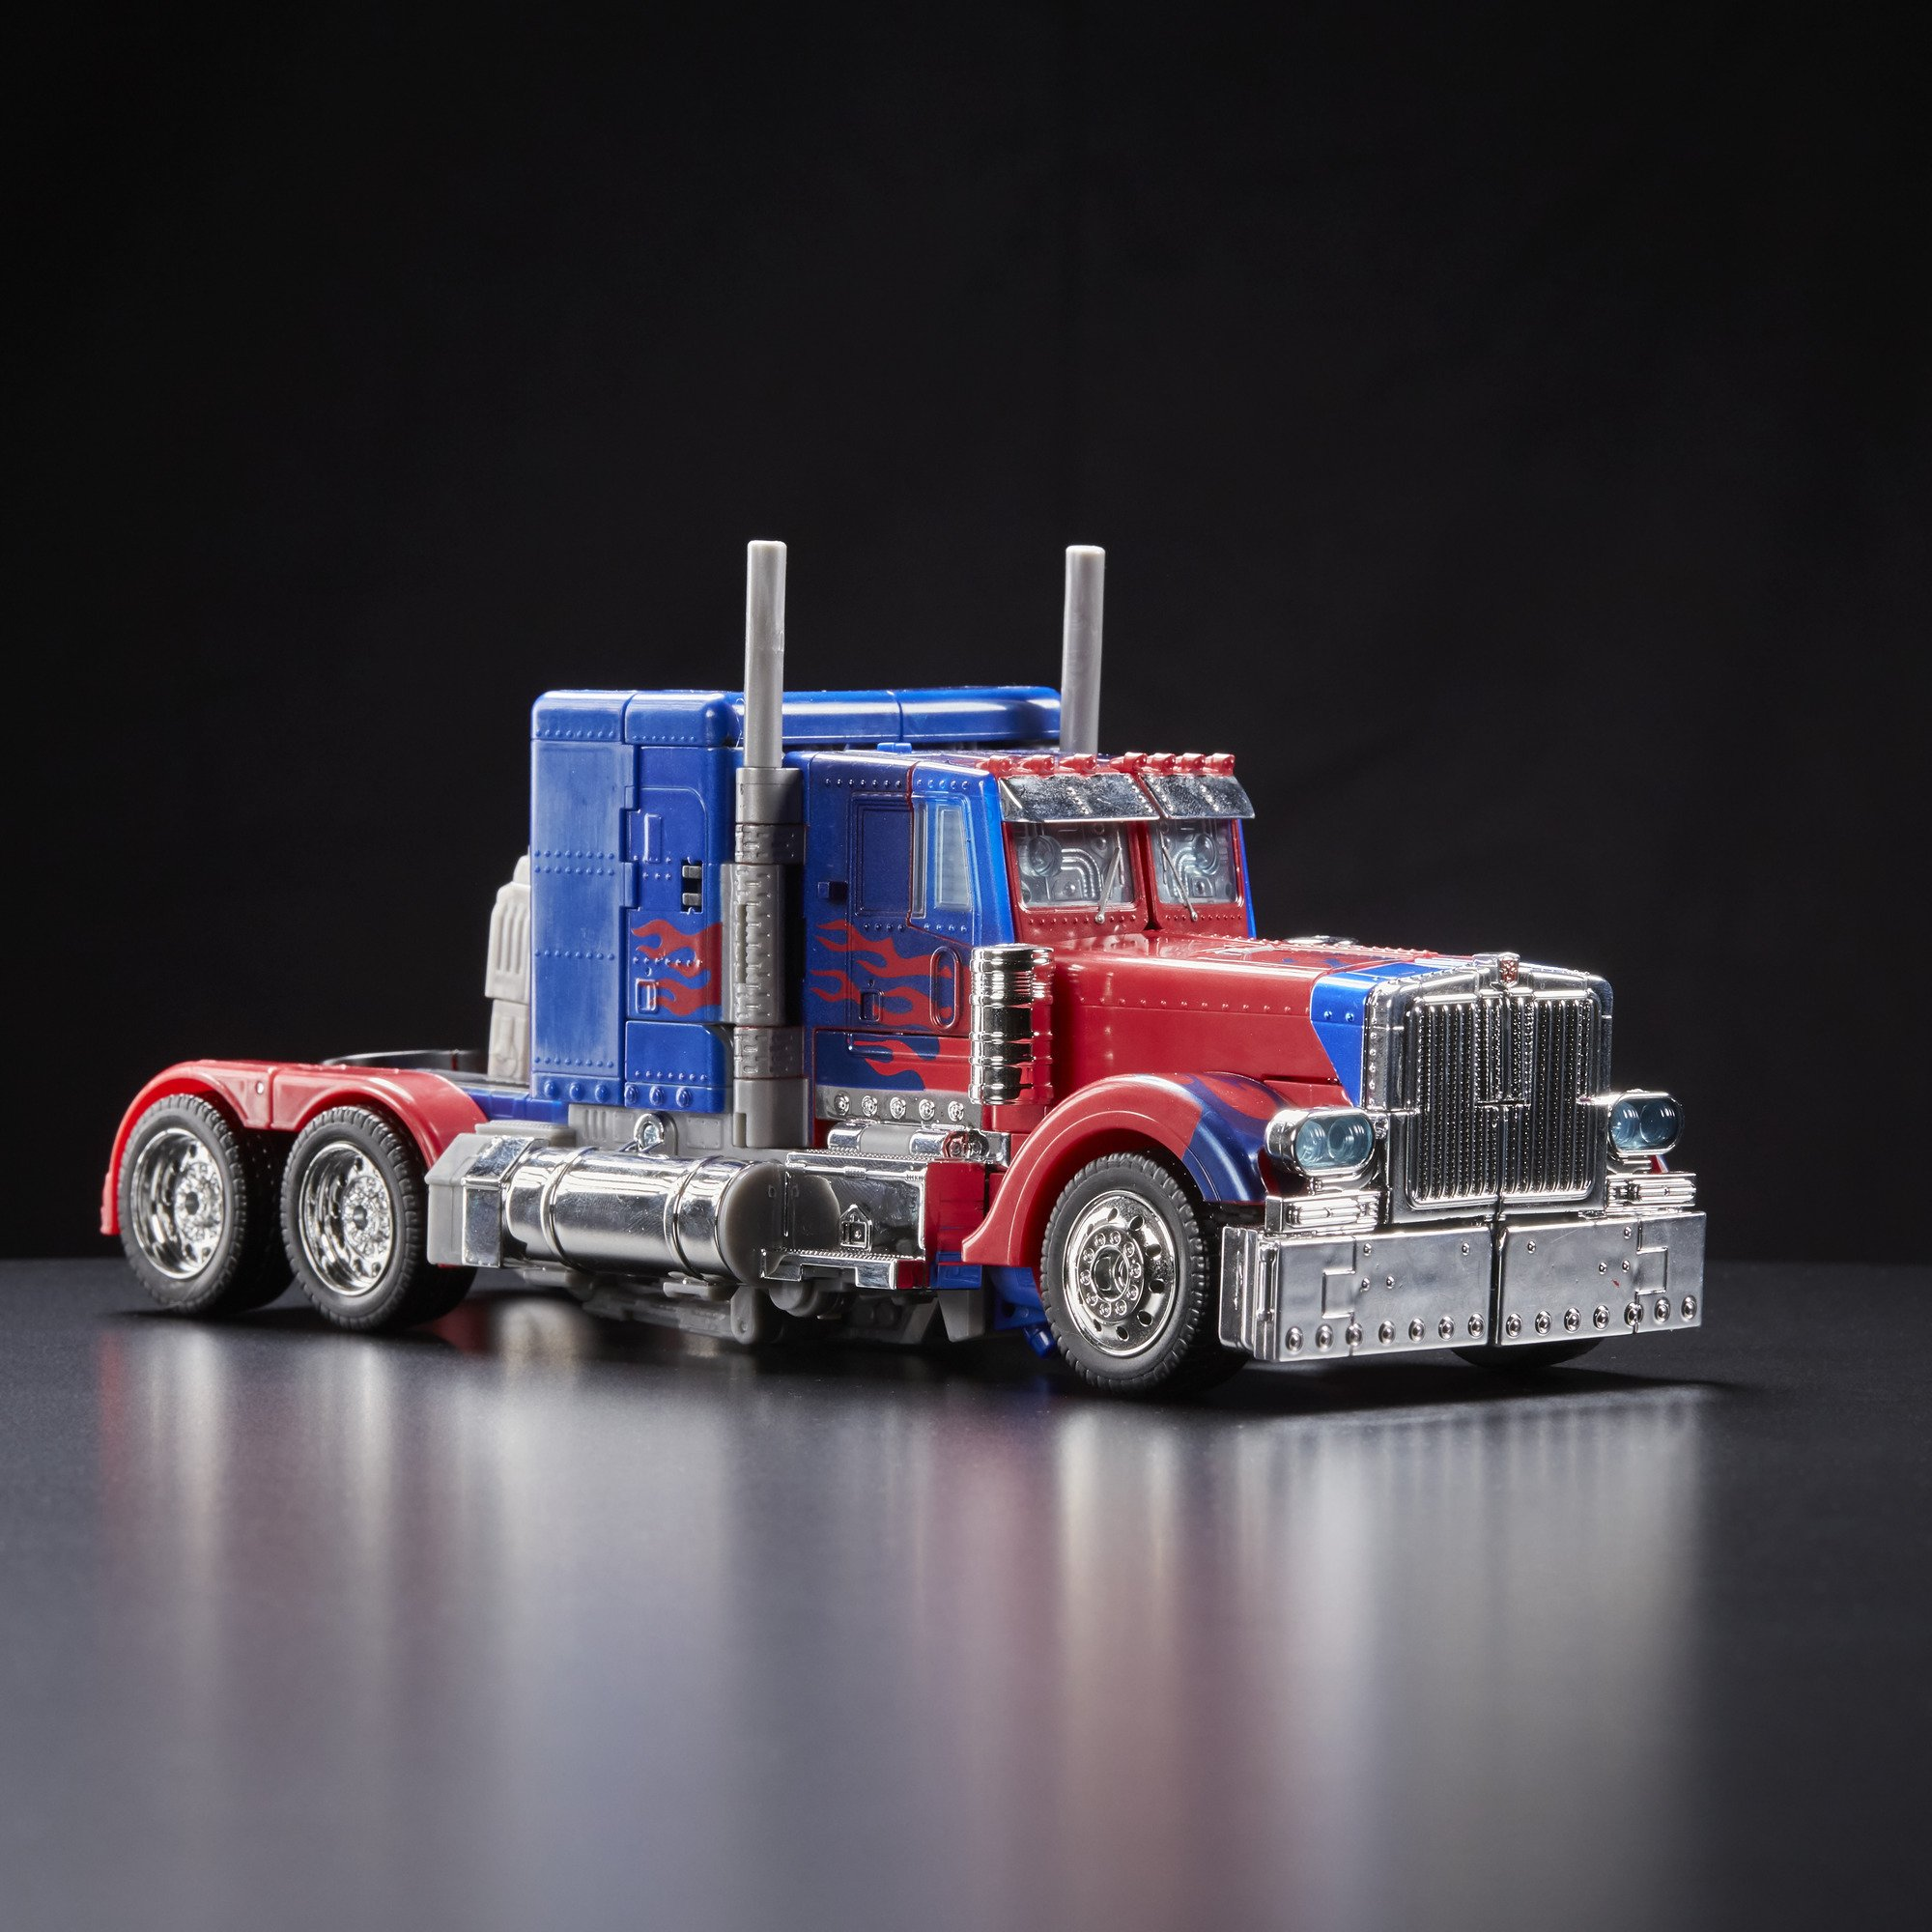 Transformers Movie Anniversary Edition Optimus Prime (Amazon Exclusive) by Transformers (Image #6)